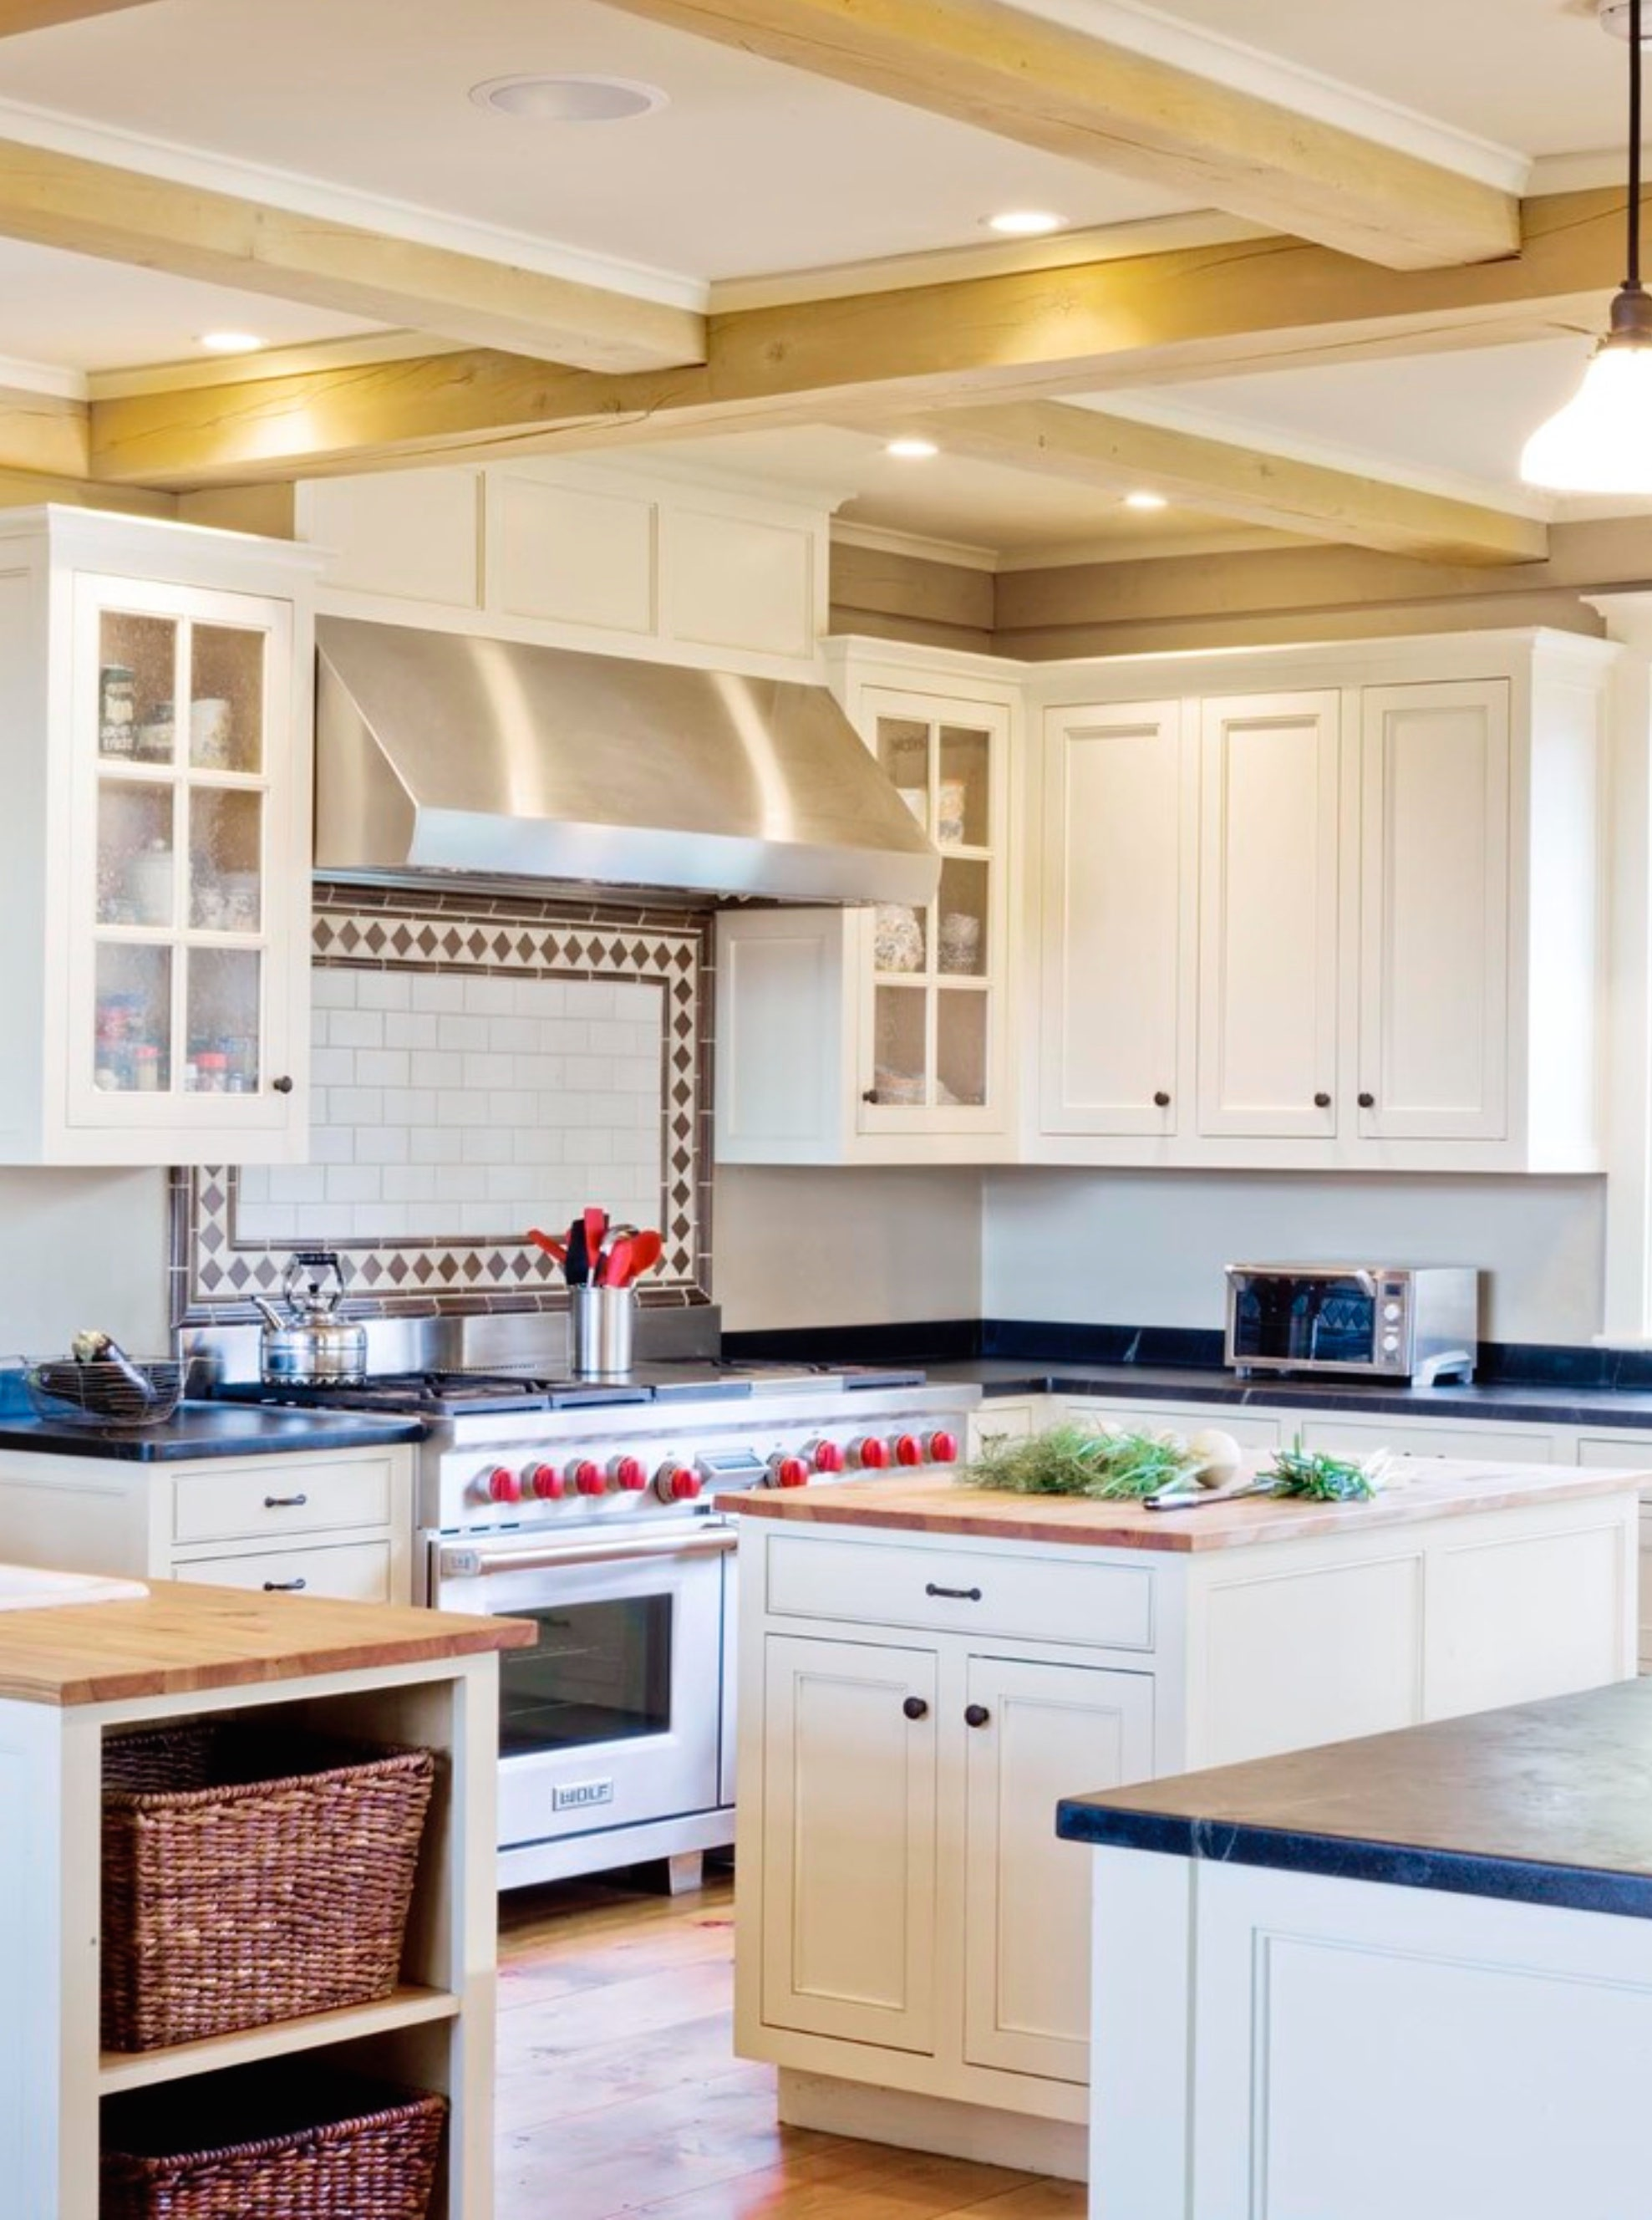 What Are The Different Types Of Range Hoods Complete With Photos